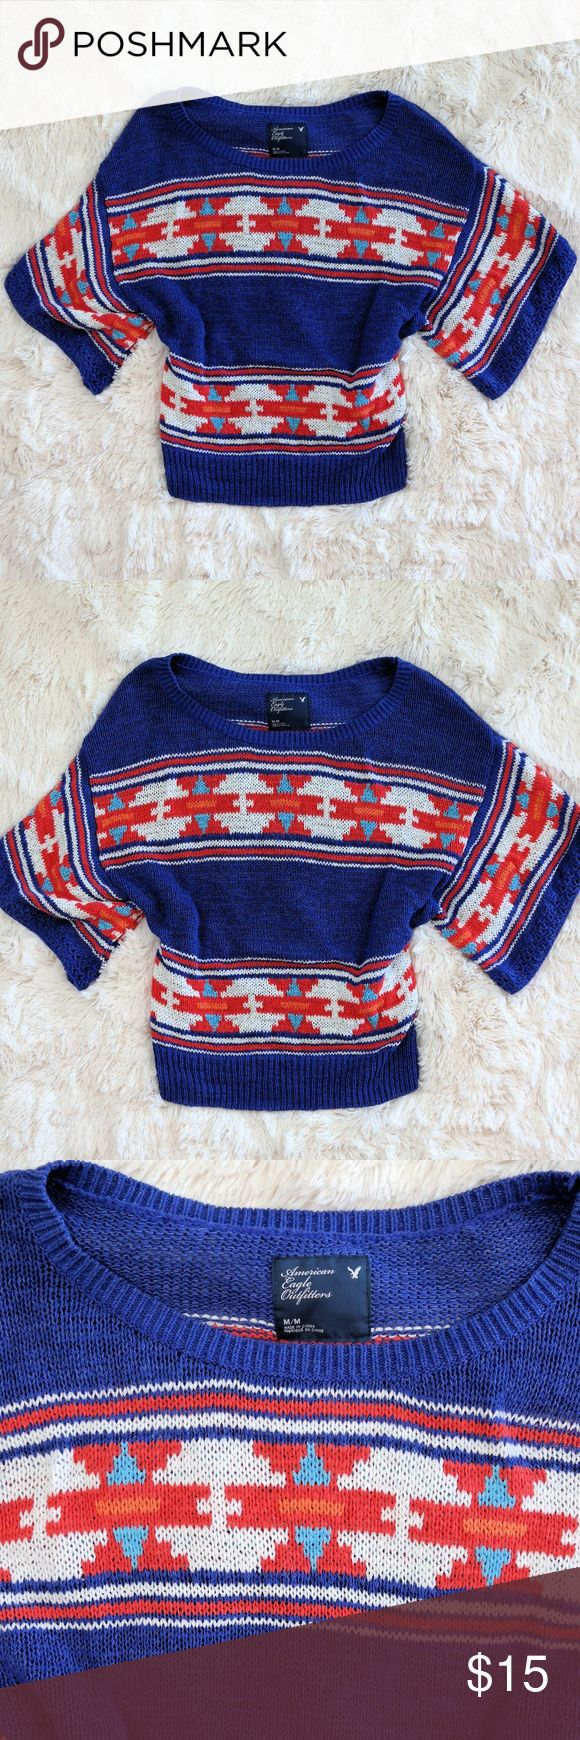 American Eagle Aztec Sweater American Eagle Outfitters Aztec style sweater with dolman sleeves Size medium American Eagle Outfitters Sweaters #americaneagleoutfitters